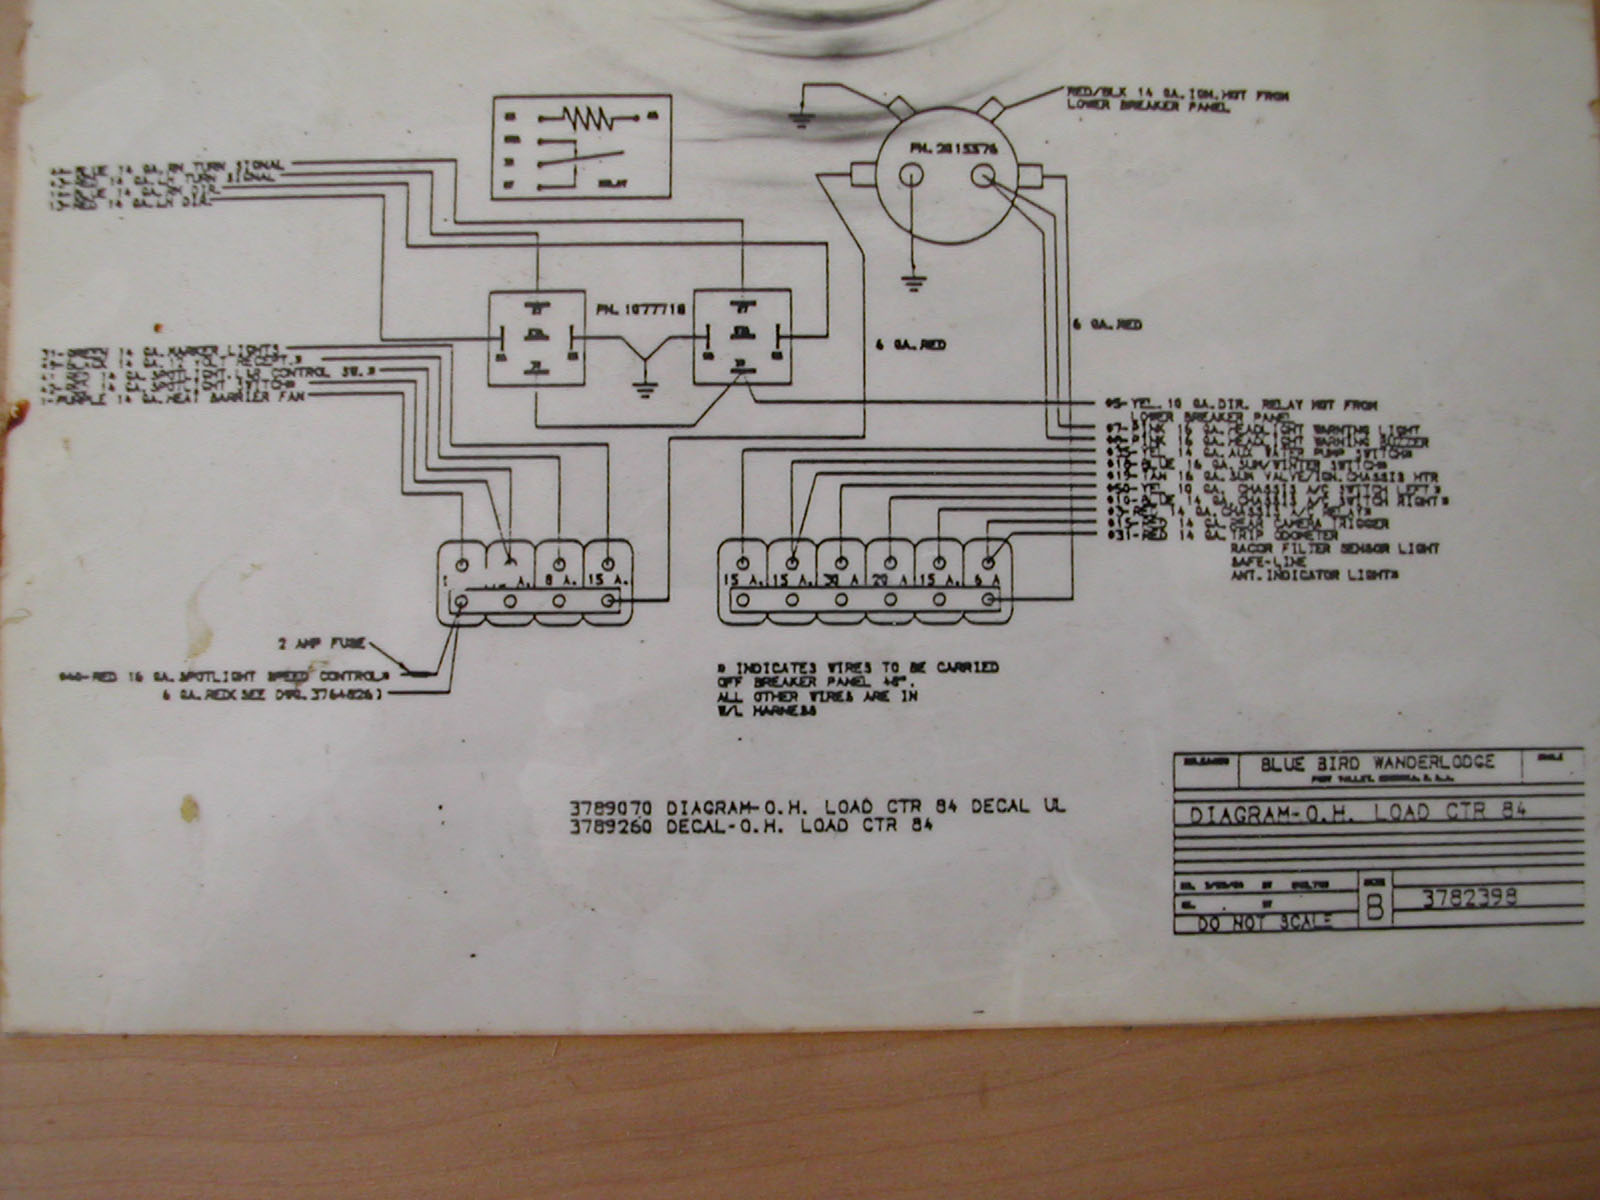 6v92 Detroit Diesel Diagram Electrical Wiring All Kind Of Diagrams U2022 Rh Happyholiimagess Com Engine Manual Motors